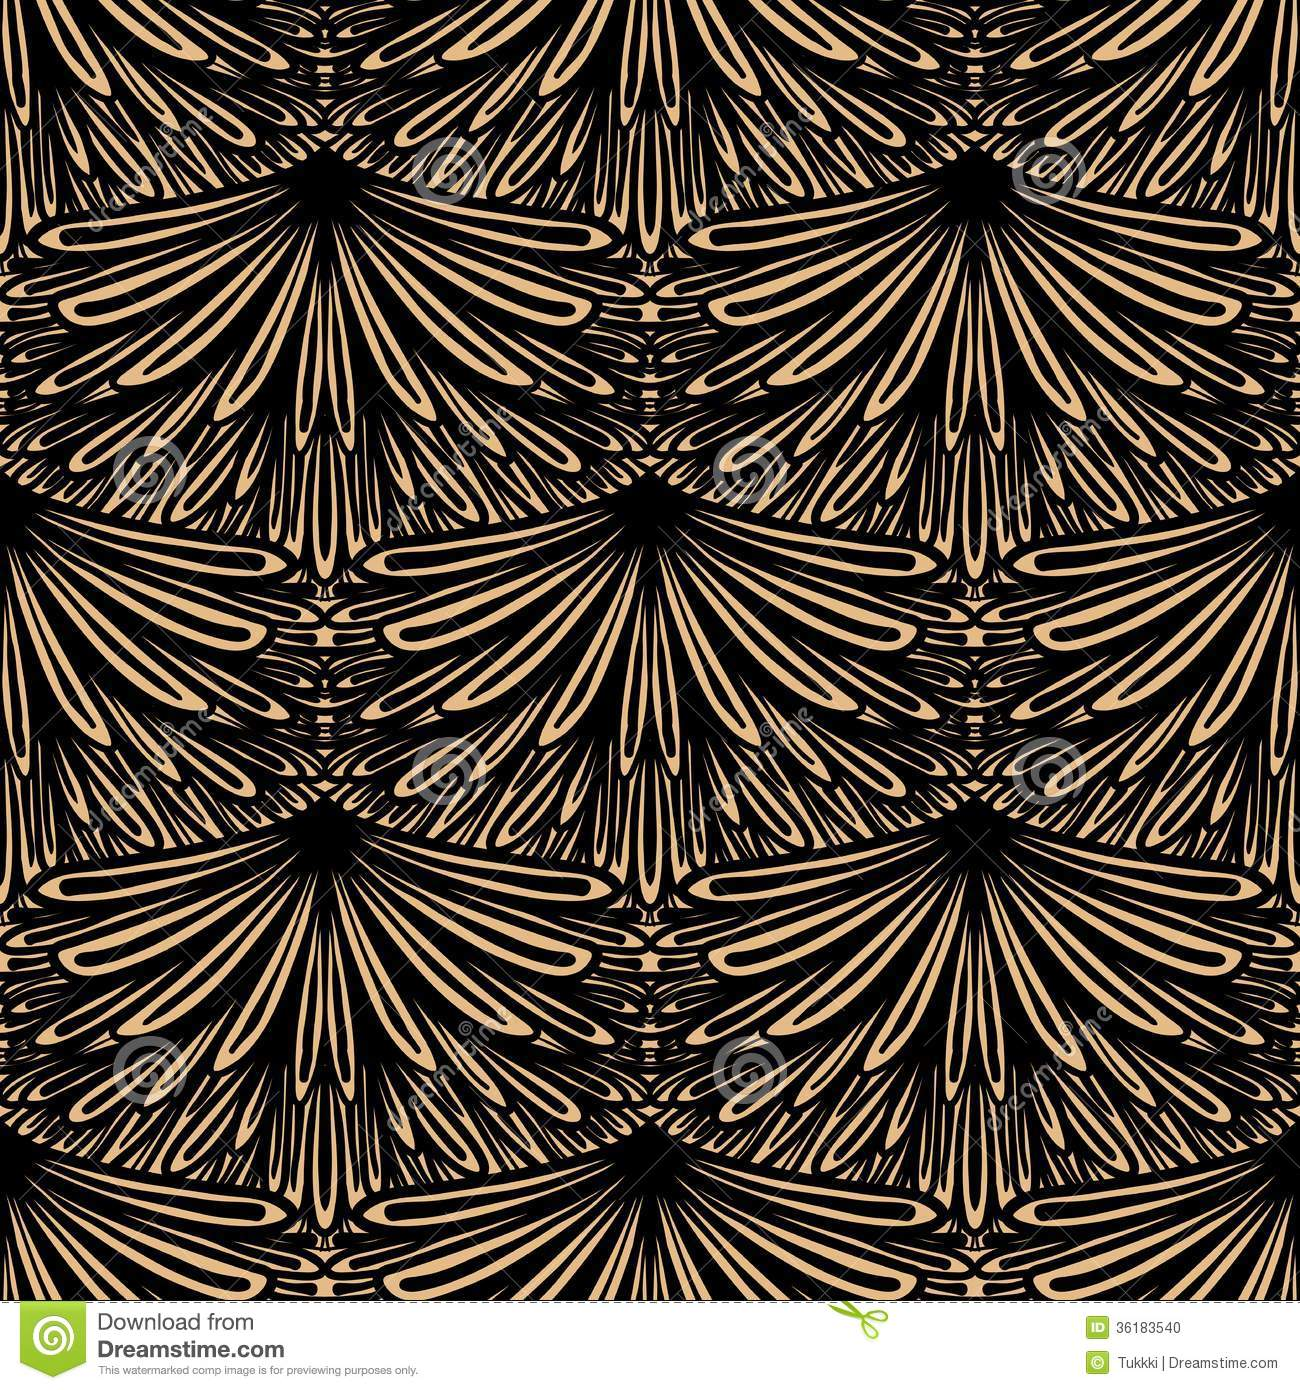 art deco vector floral pattern stock photo - image: 36183540